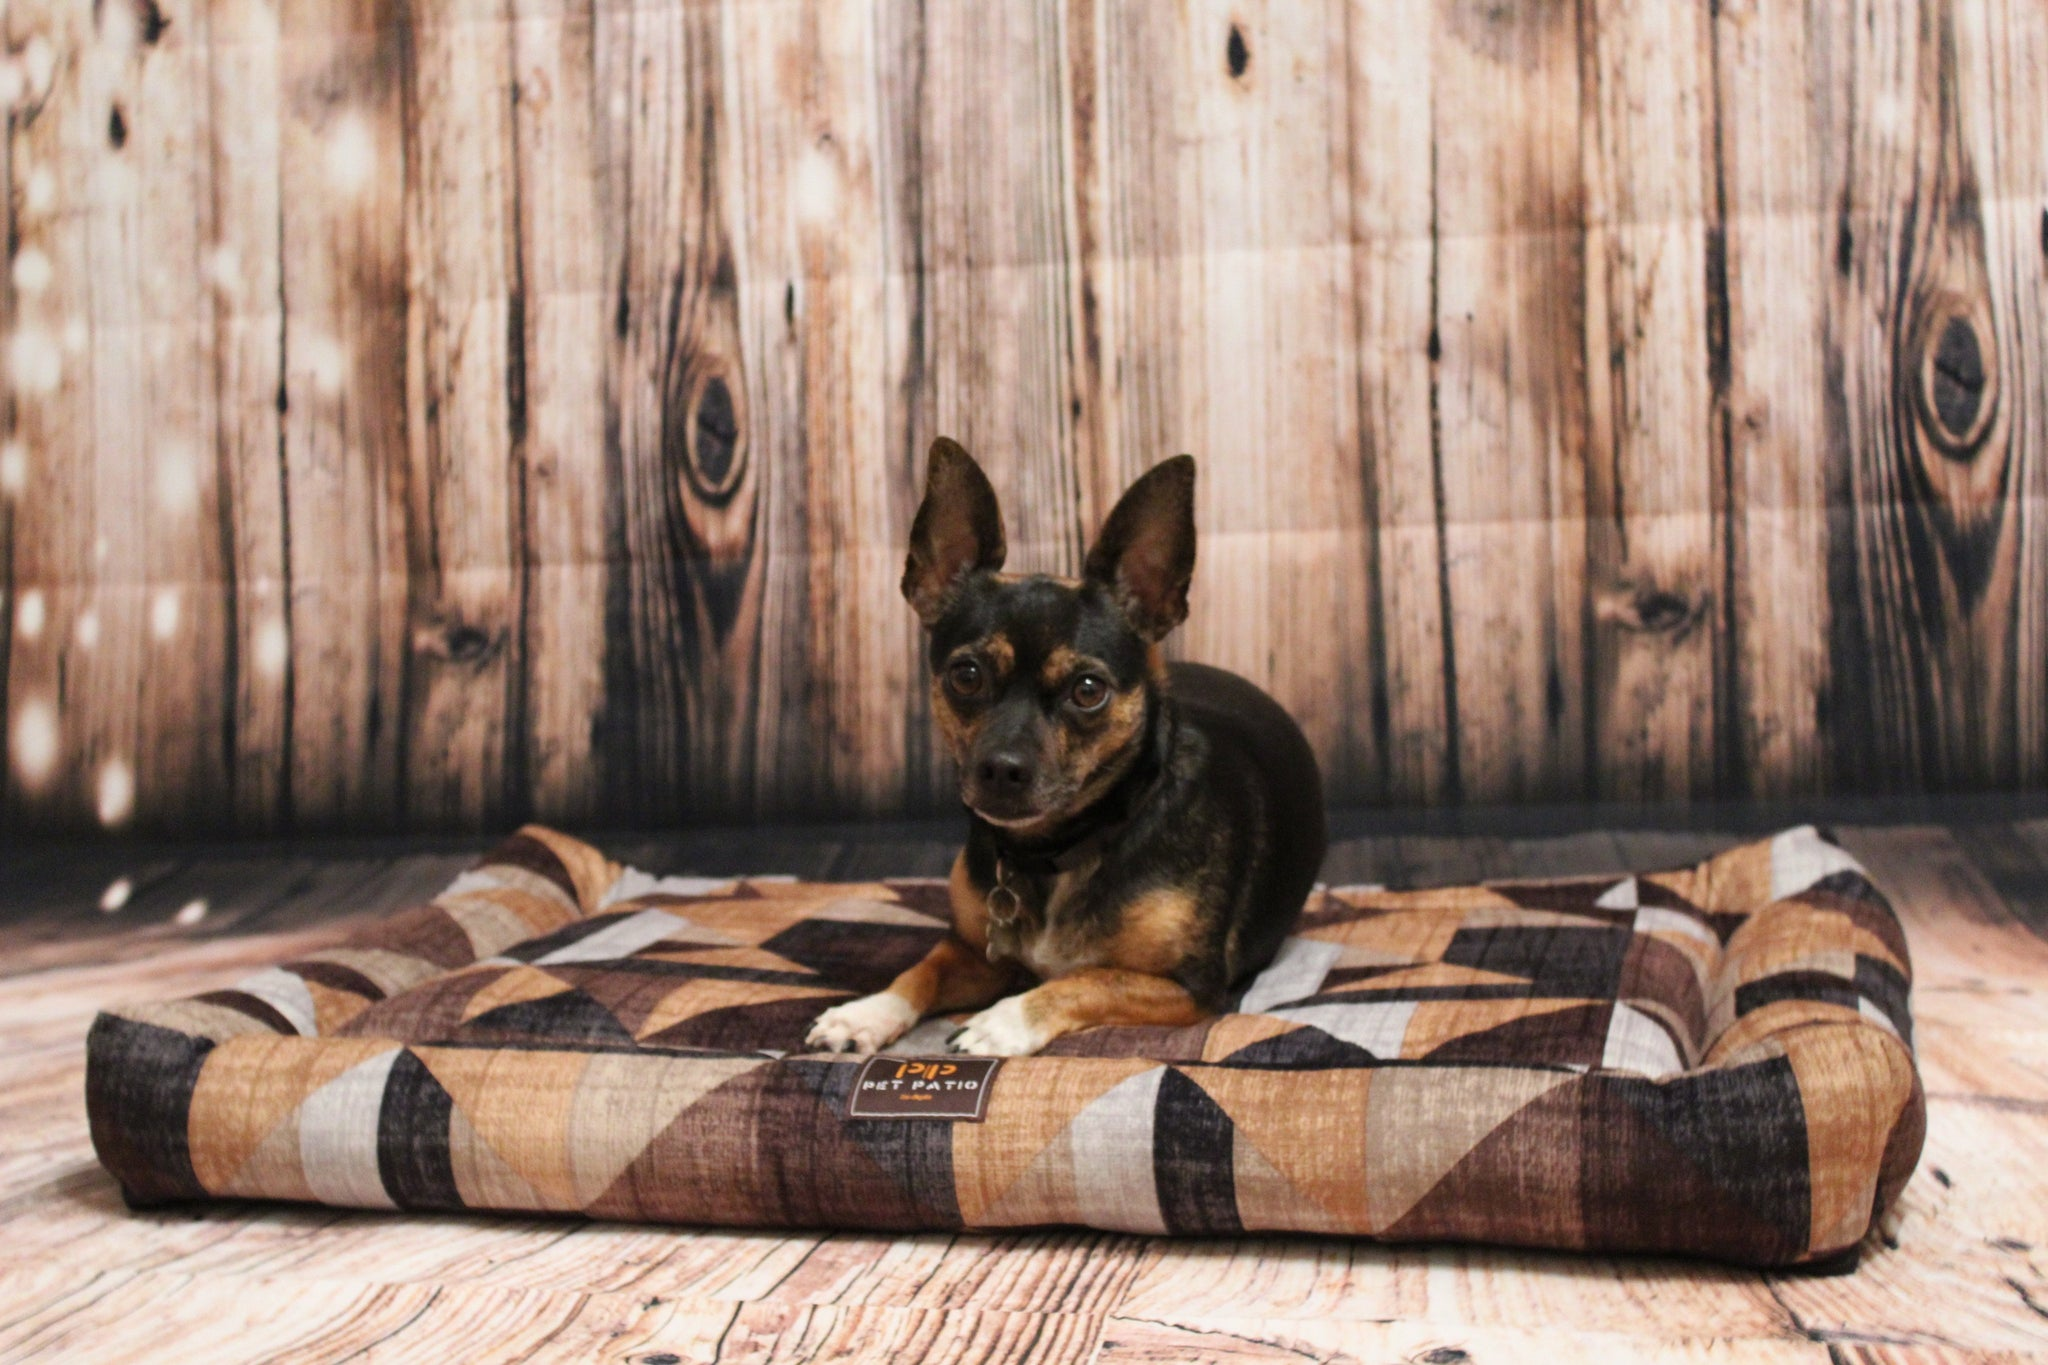 Orthopedic Dog Bed with Washable Cover (Rectangle shape)